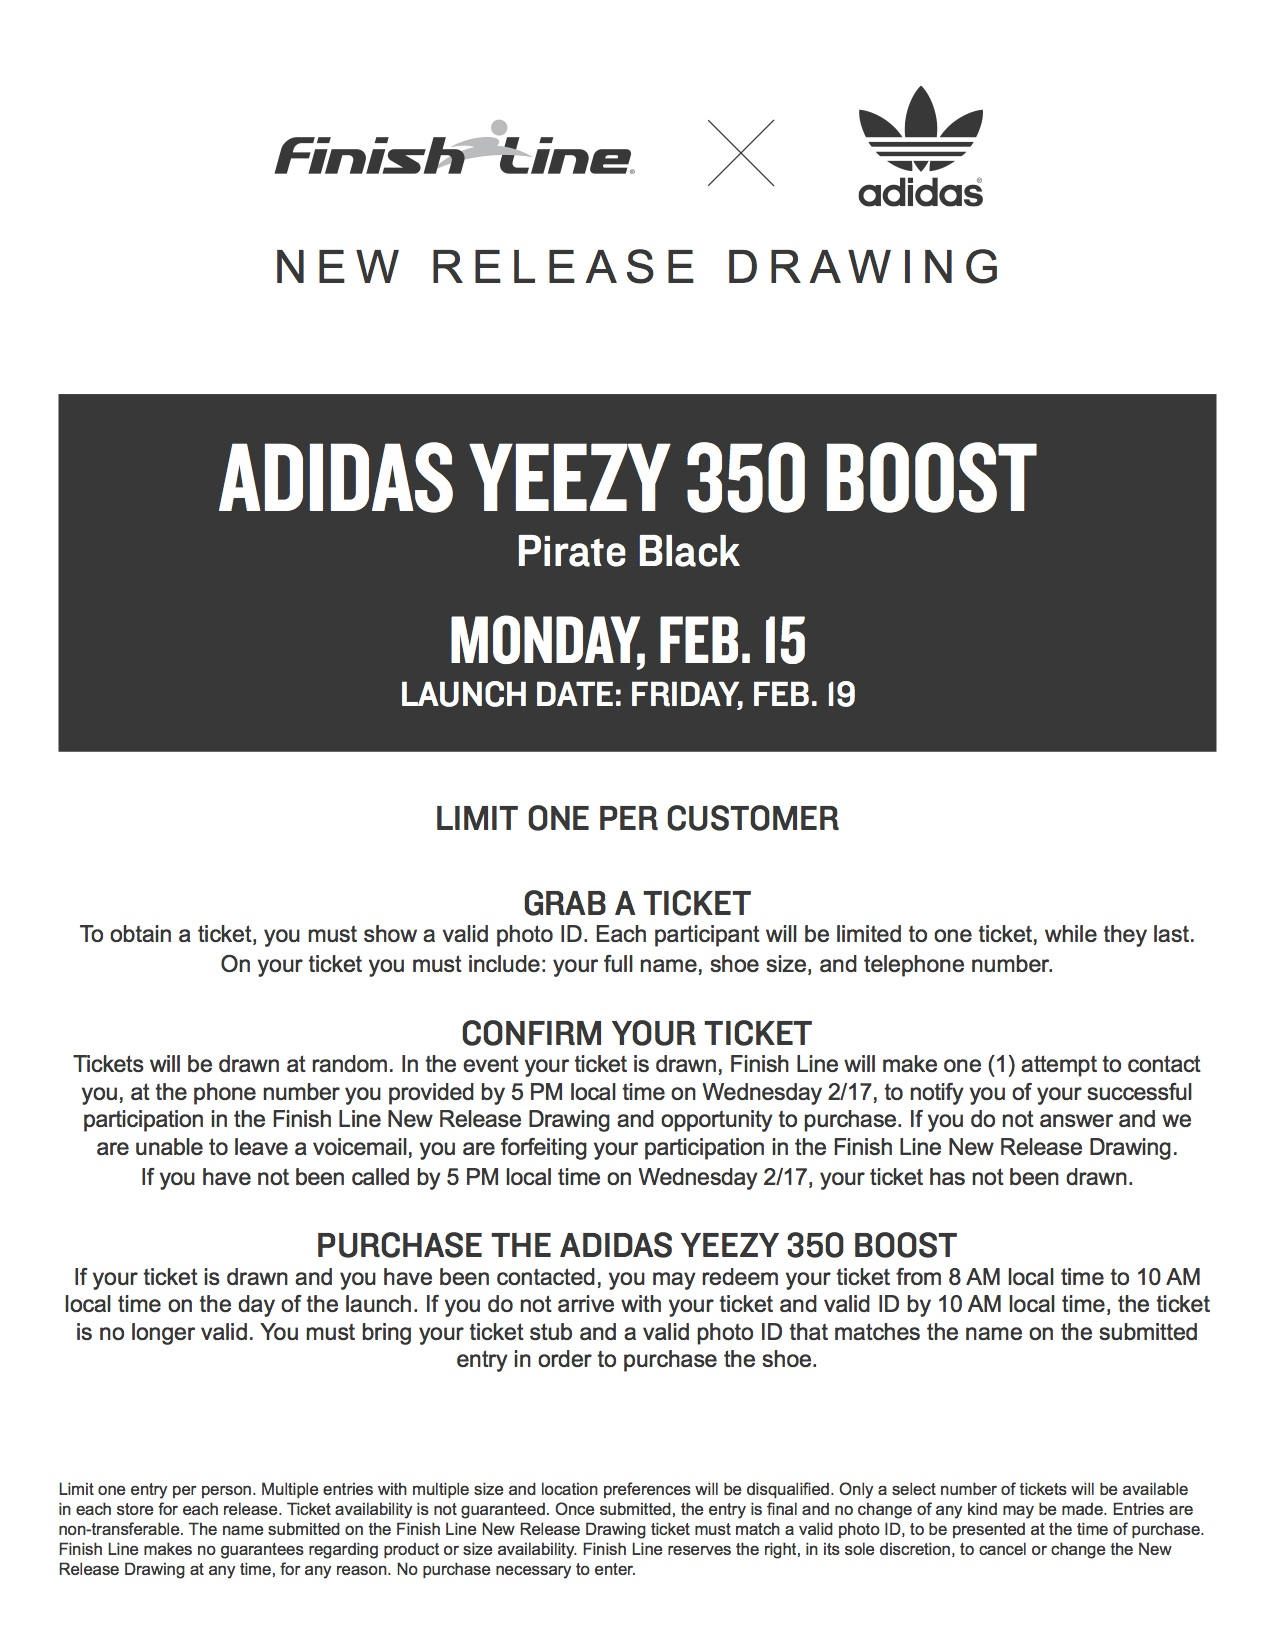 adidas_Yeezy_350_Boost-Flyer1-copy